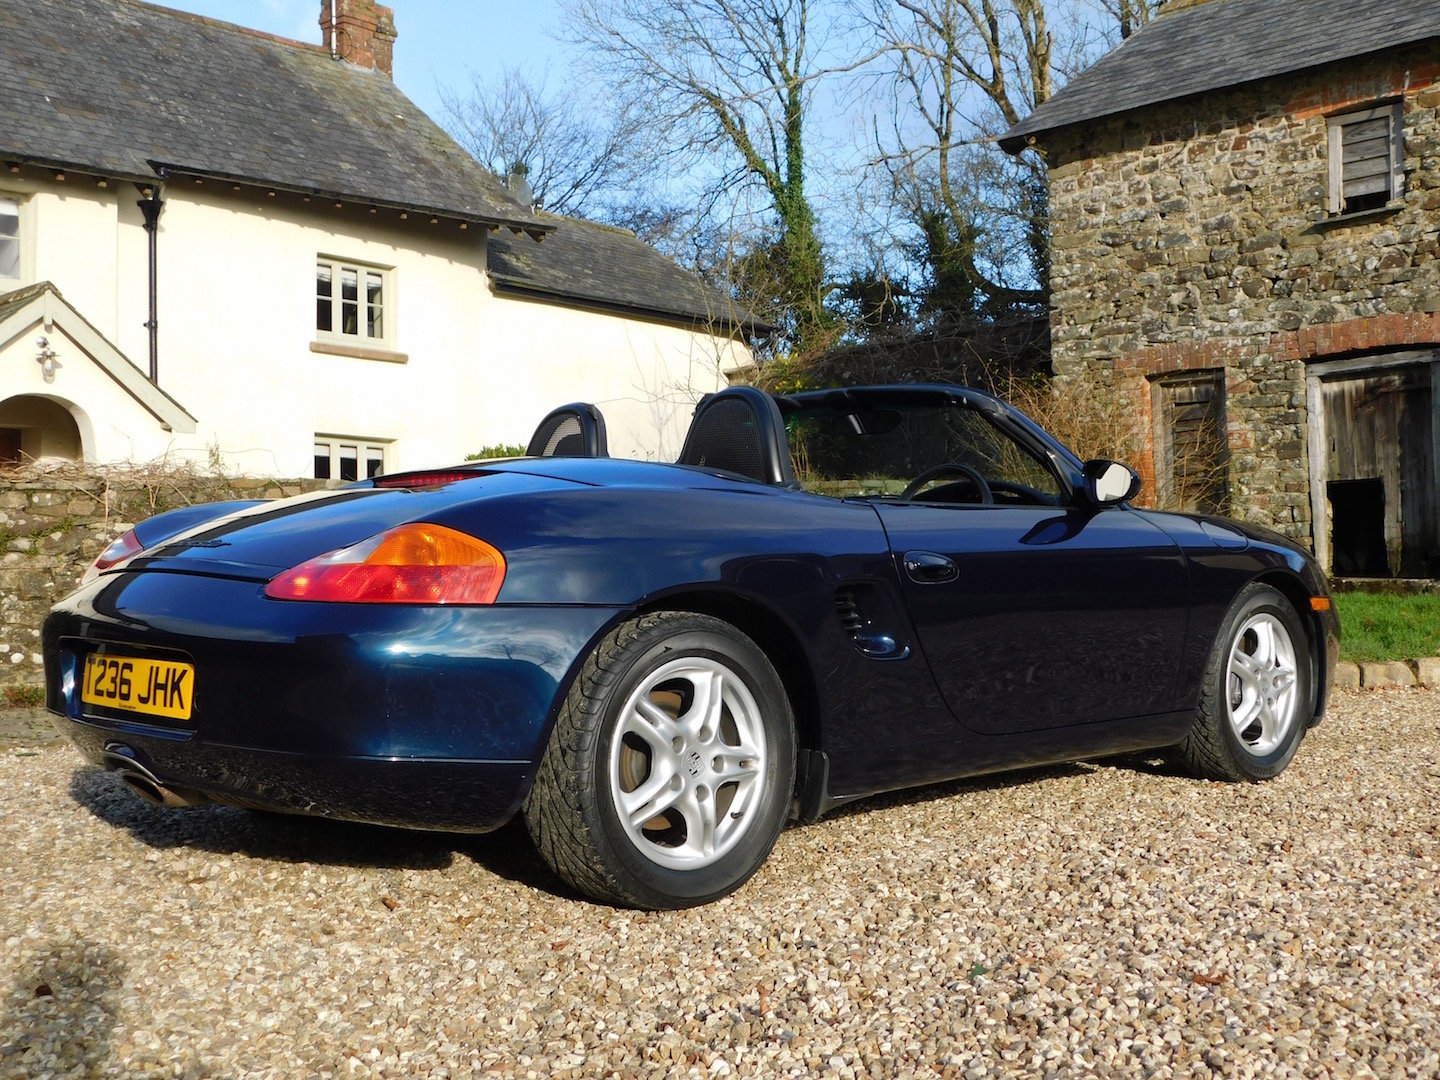 1999 Porsche 986 Boxster 2.5 - 44k miles, excellent throughout For Sale (picture 2 of 6)